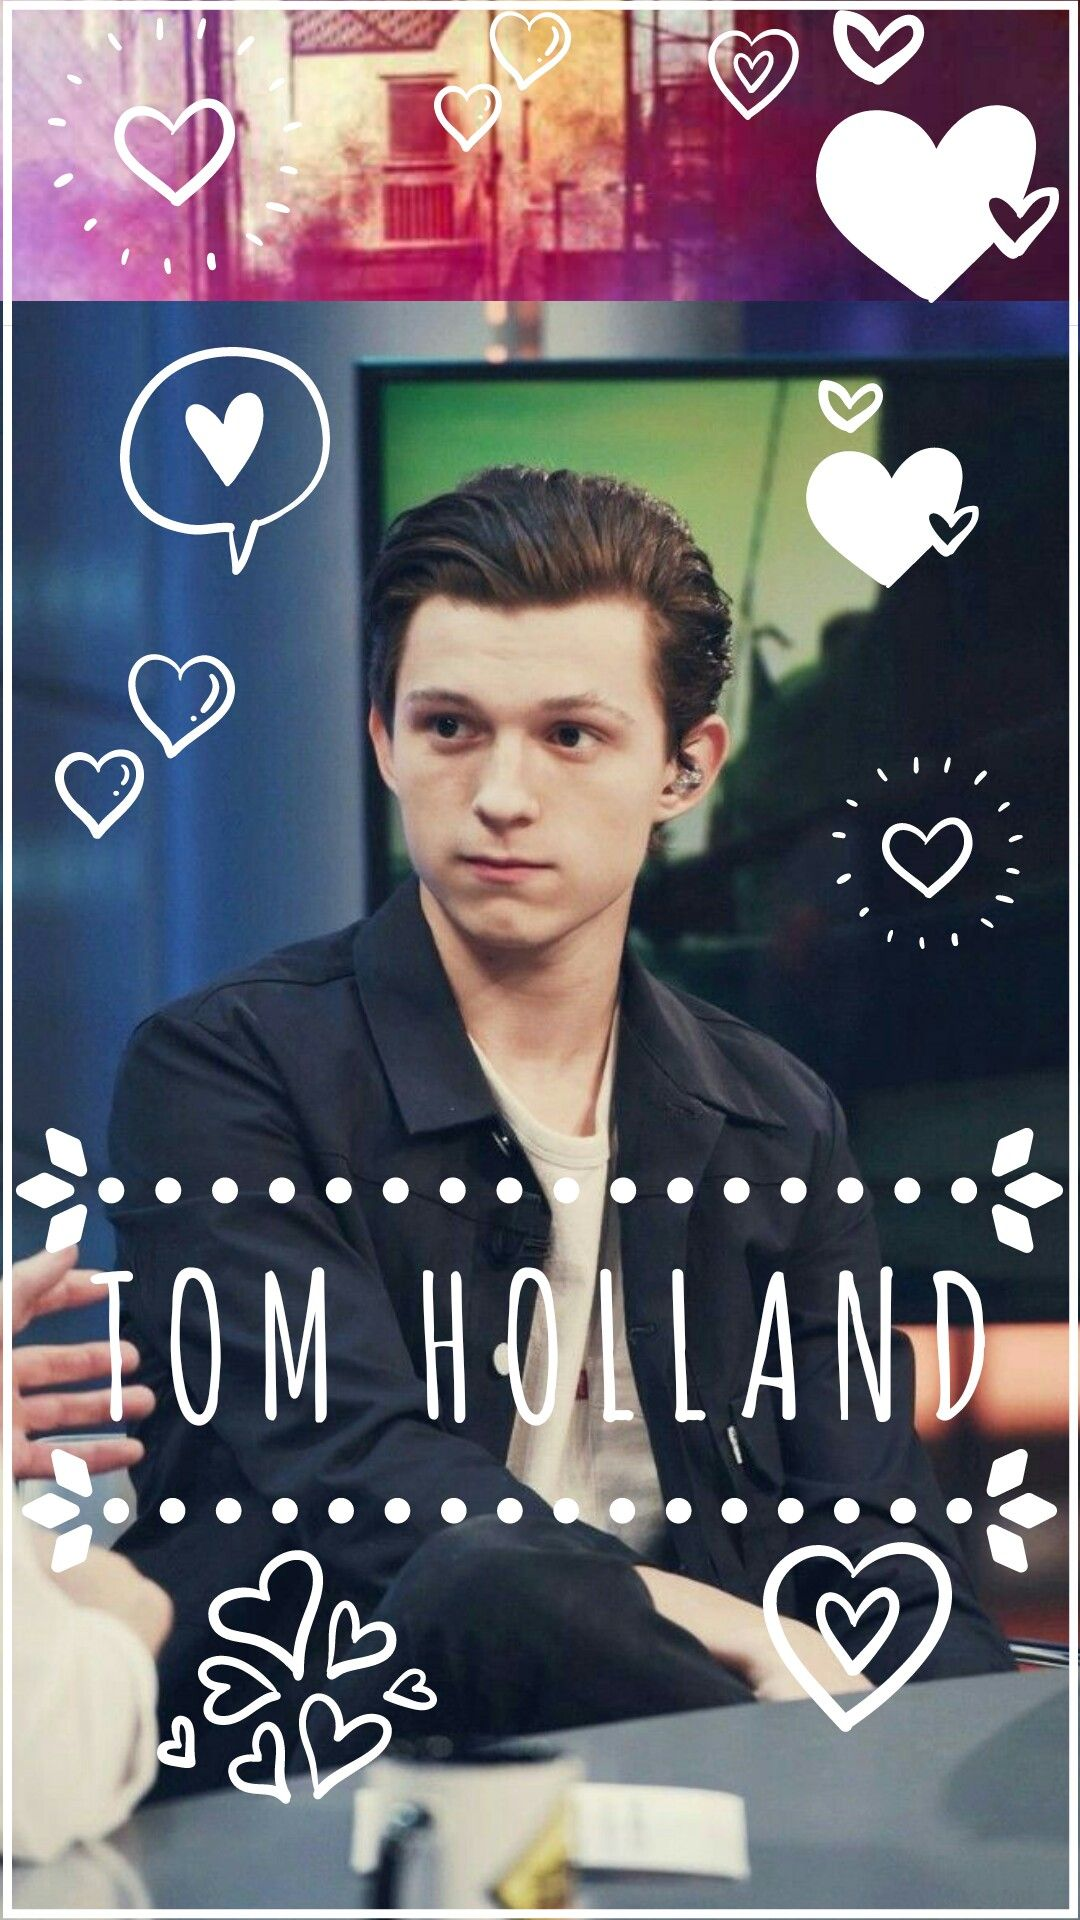 Tom Holland wallpaper!! Made by meeeee!